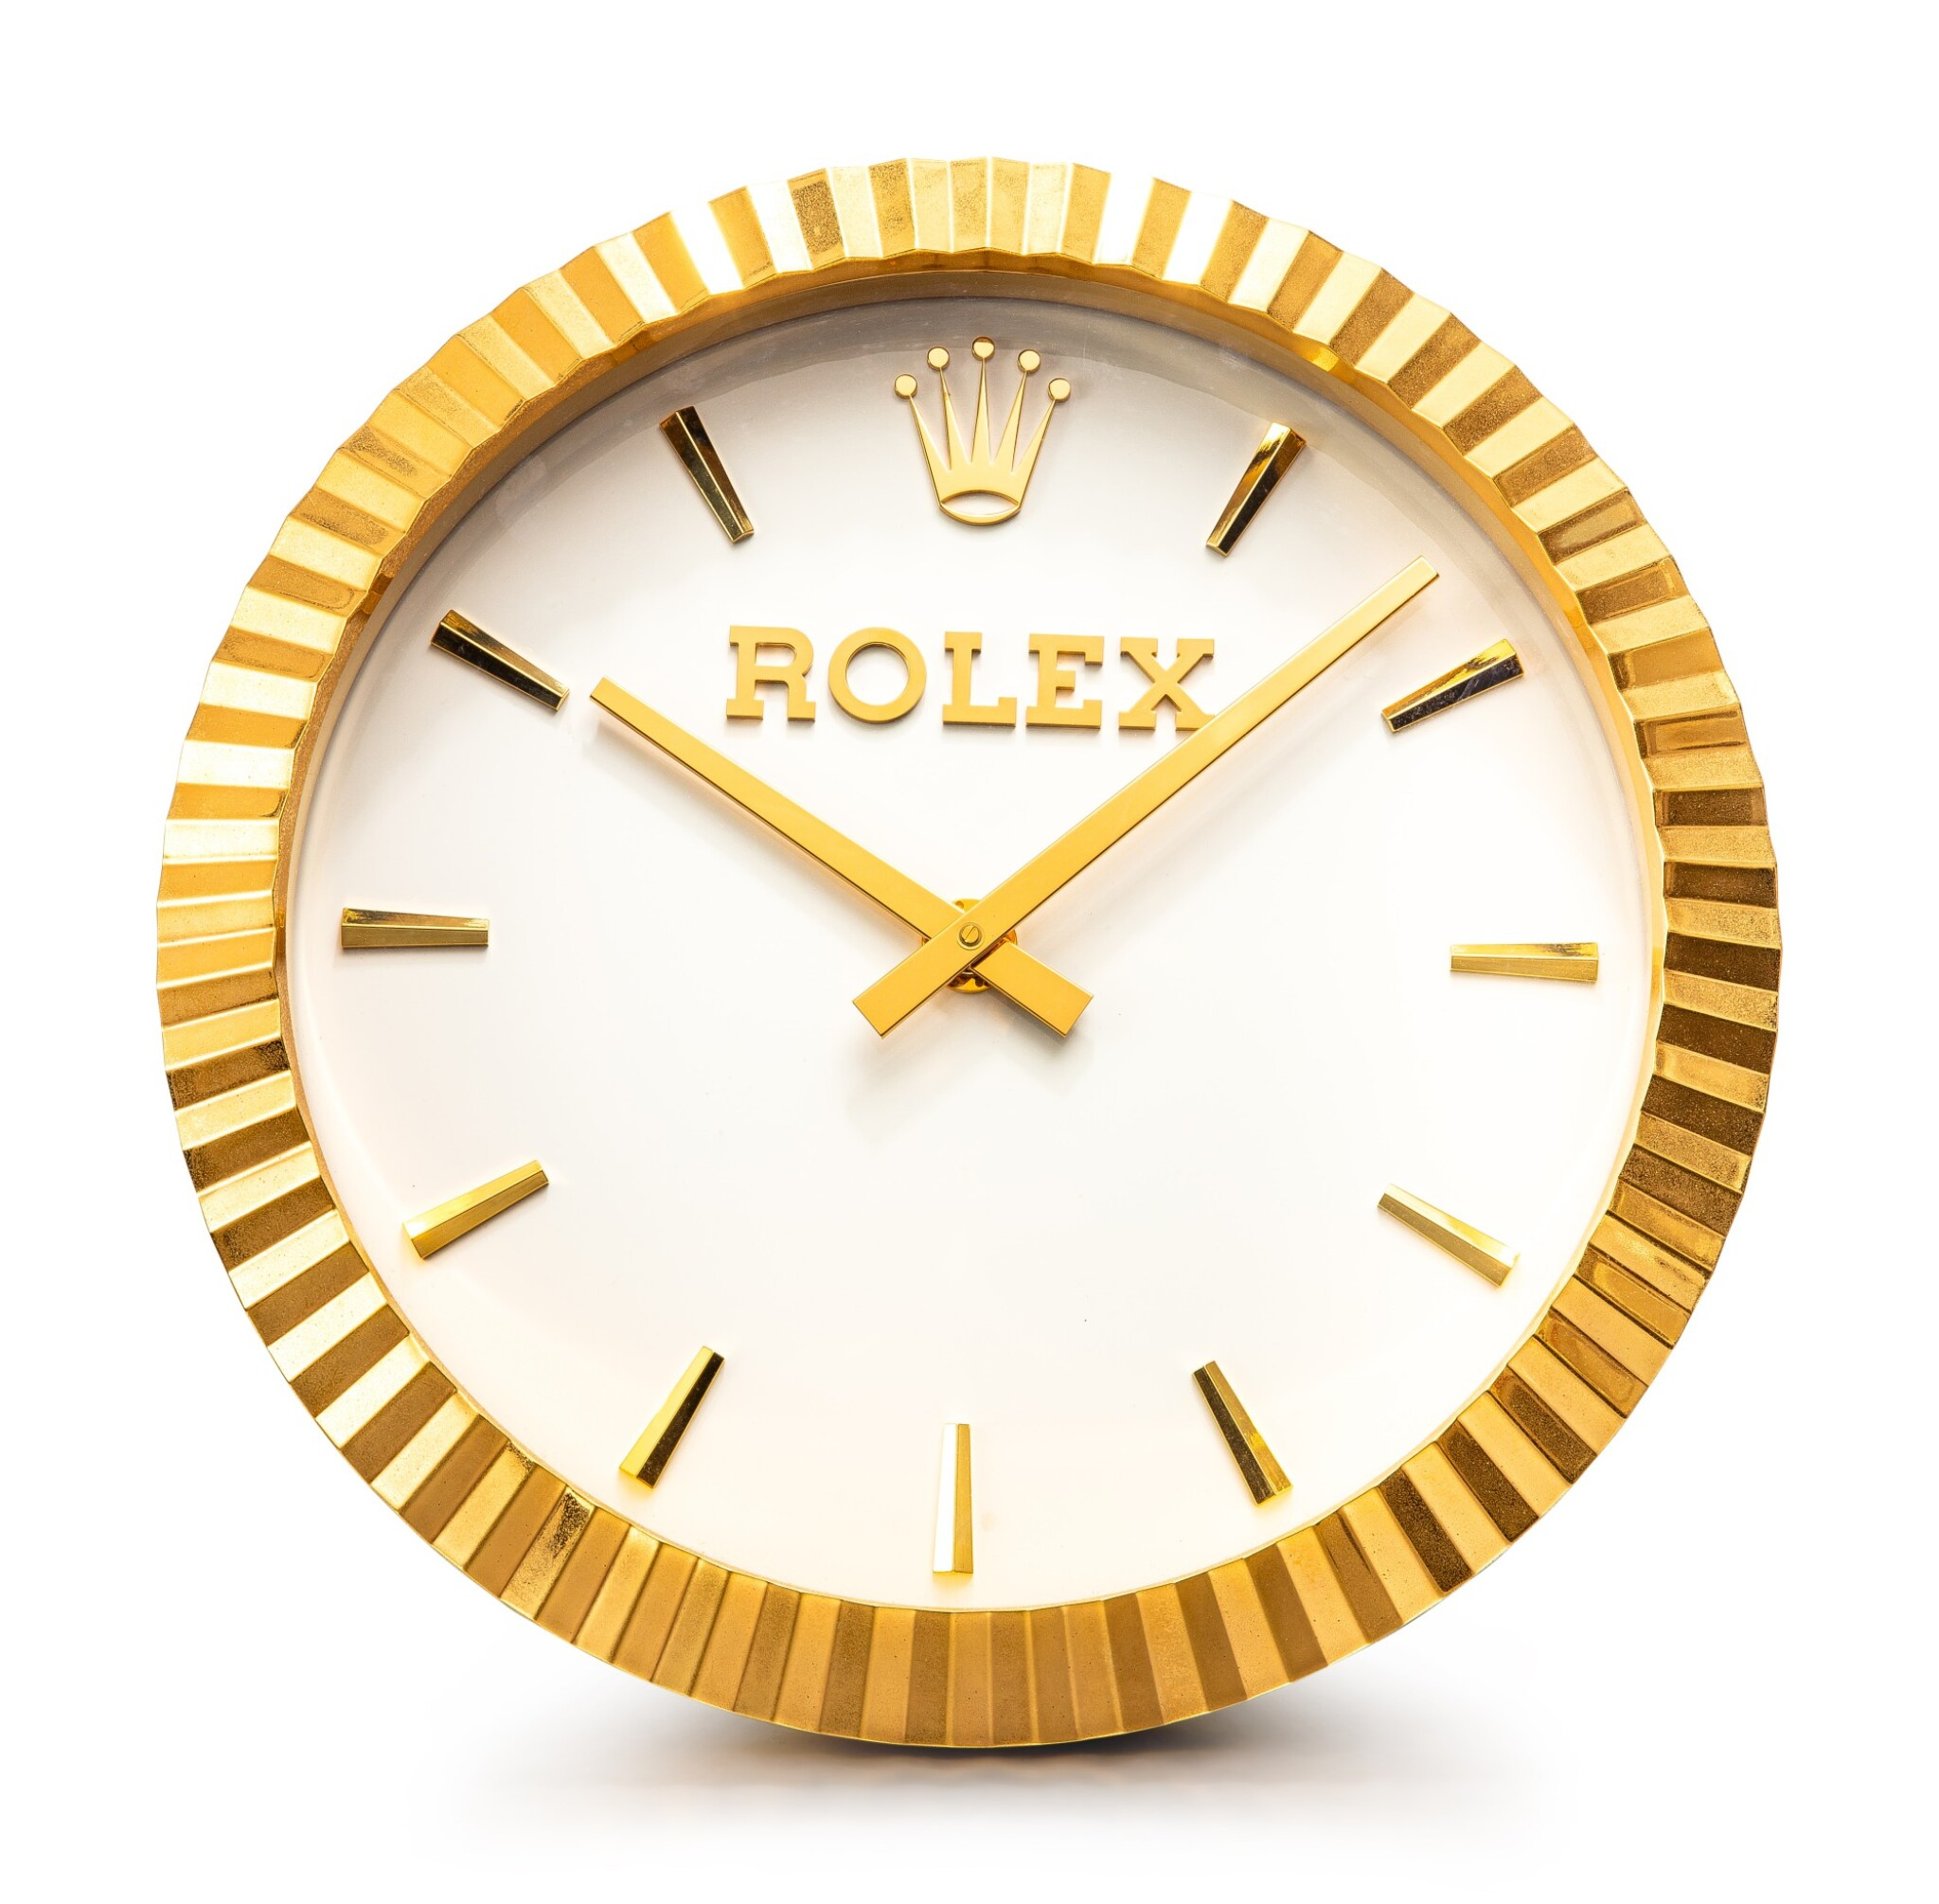 View full screen - View 1 of Lot 8058. ROLEX, MANUFACTURED BY INDUCTA   A GILT BRASS WALL CLOCK, CIRCA 2010    勞力士,由 INDUCTA 製作   鍍金銅製掛鐘,約2010年製.